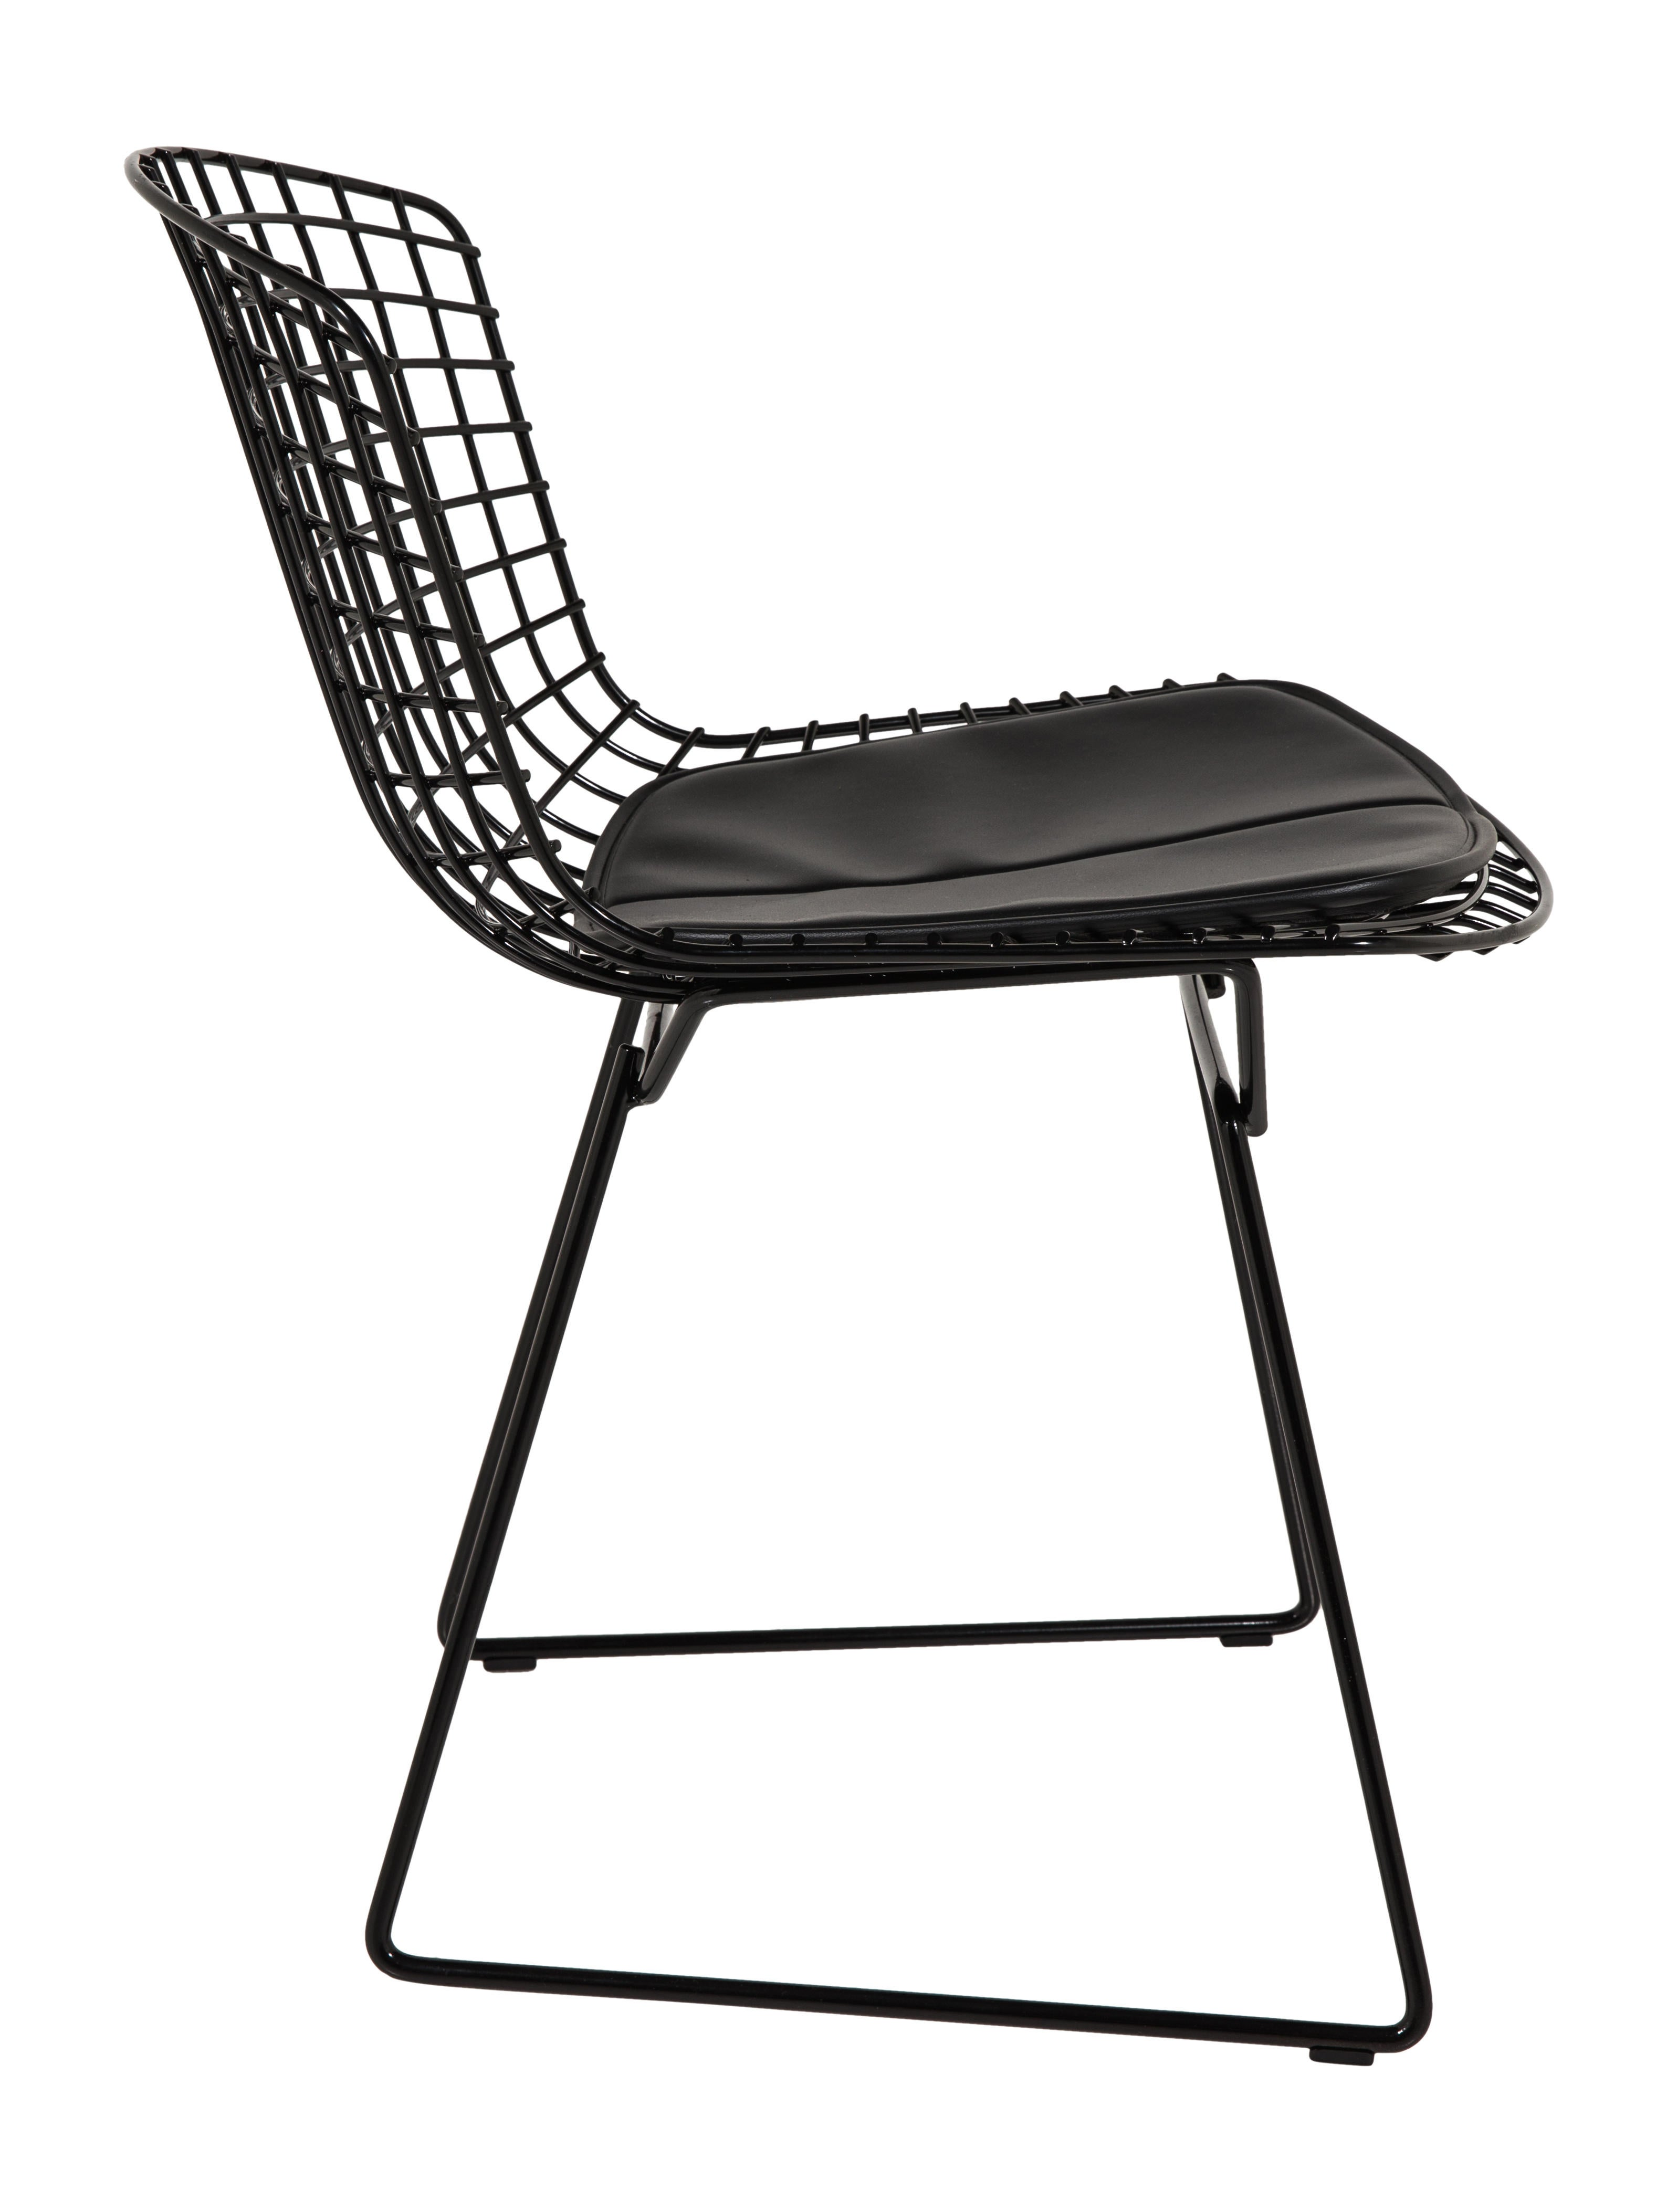 Knoll Bertoia Chair With Cushion Furniture Knl20103 The Realreal